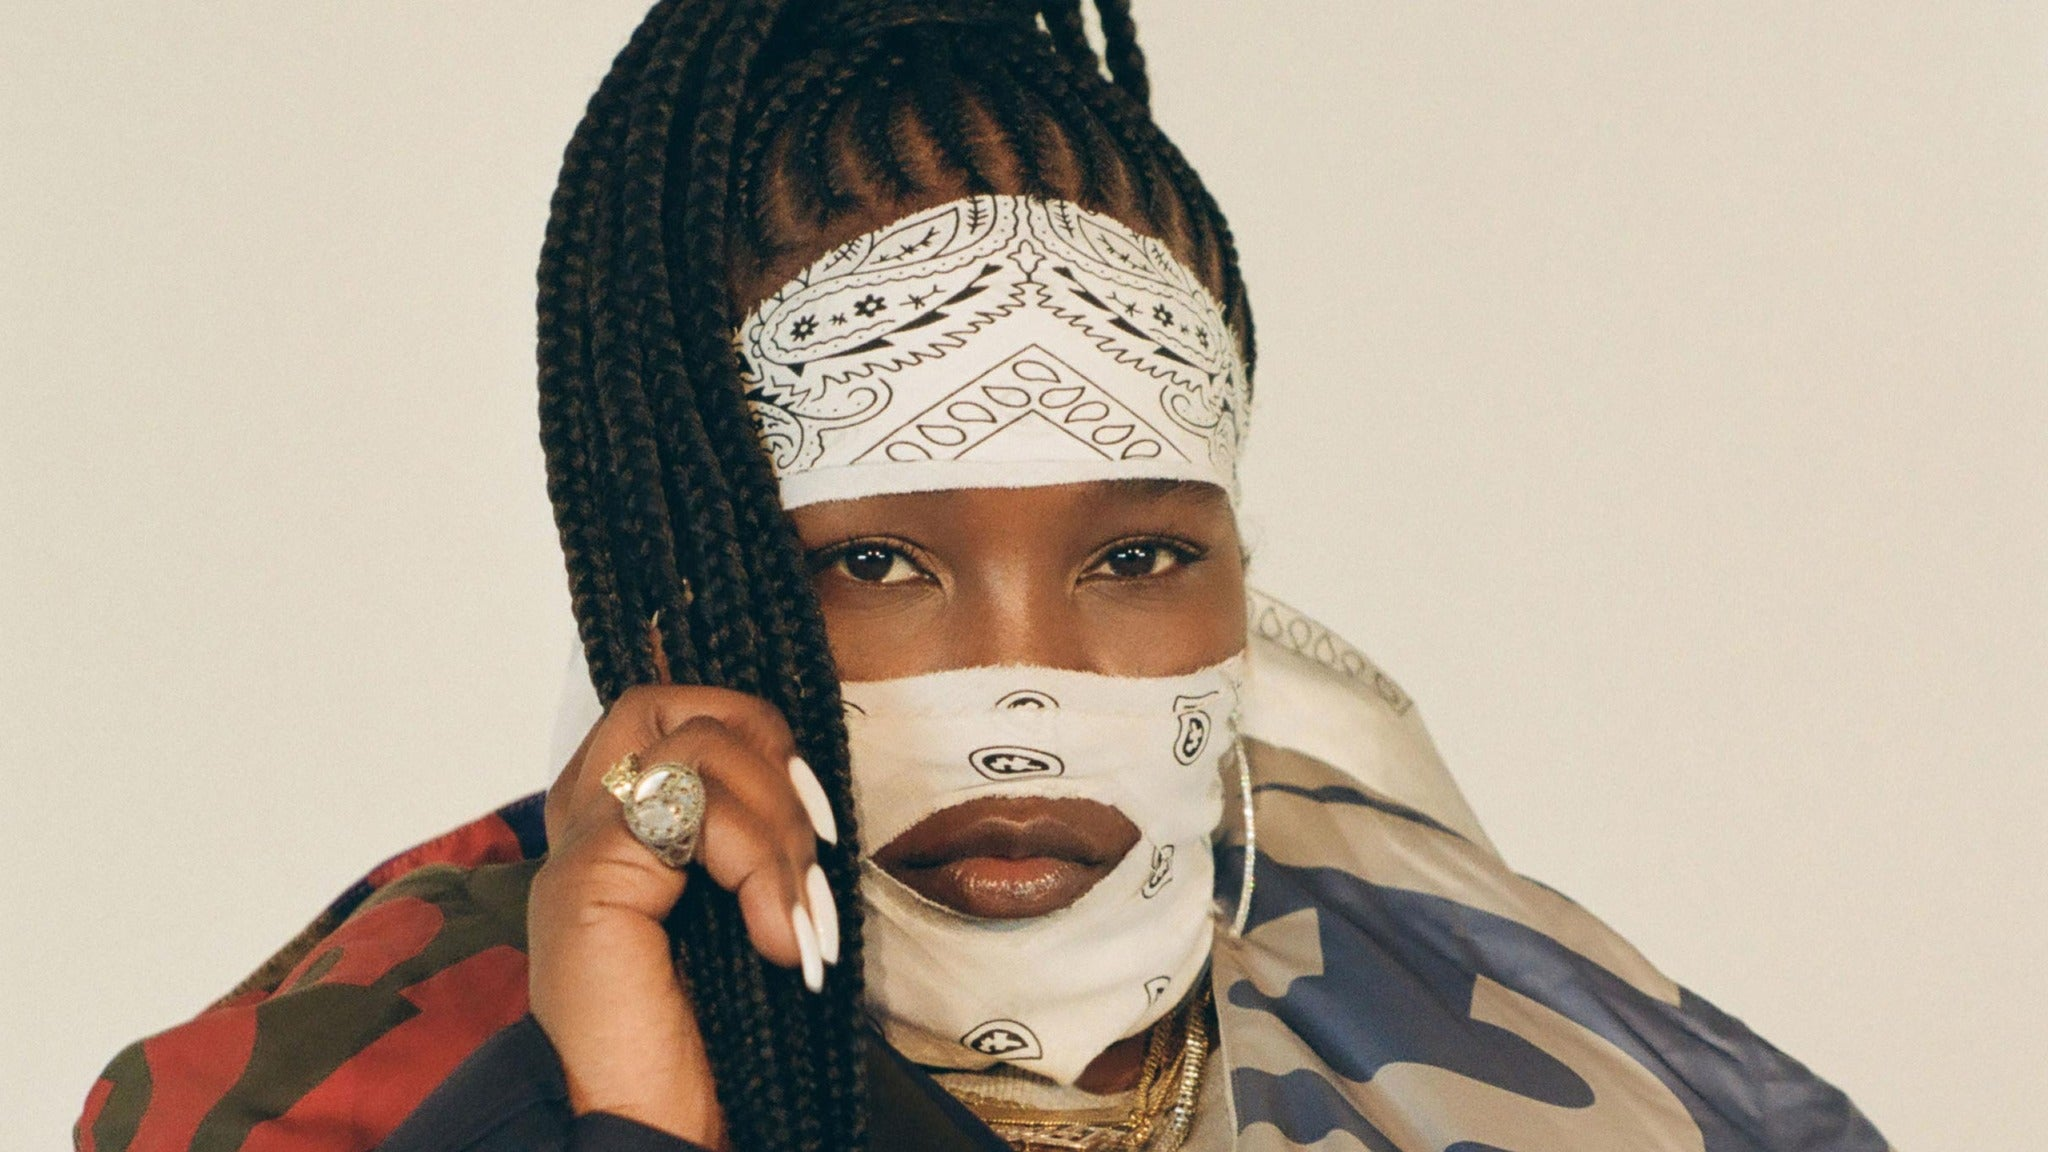 Femme It Forward Ft. Leikeli47, Kari Faux, Iyla, And Yung Baby Tate